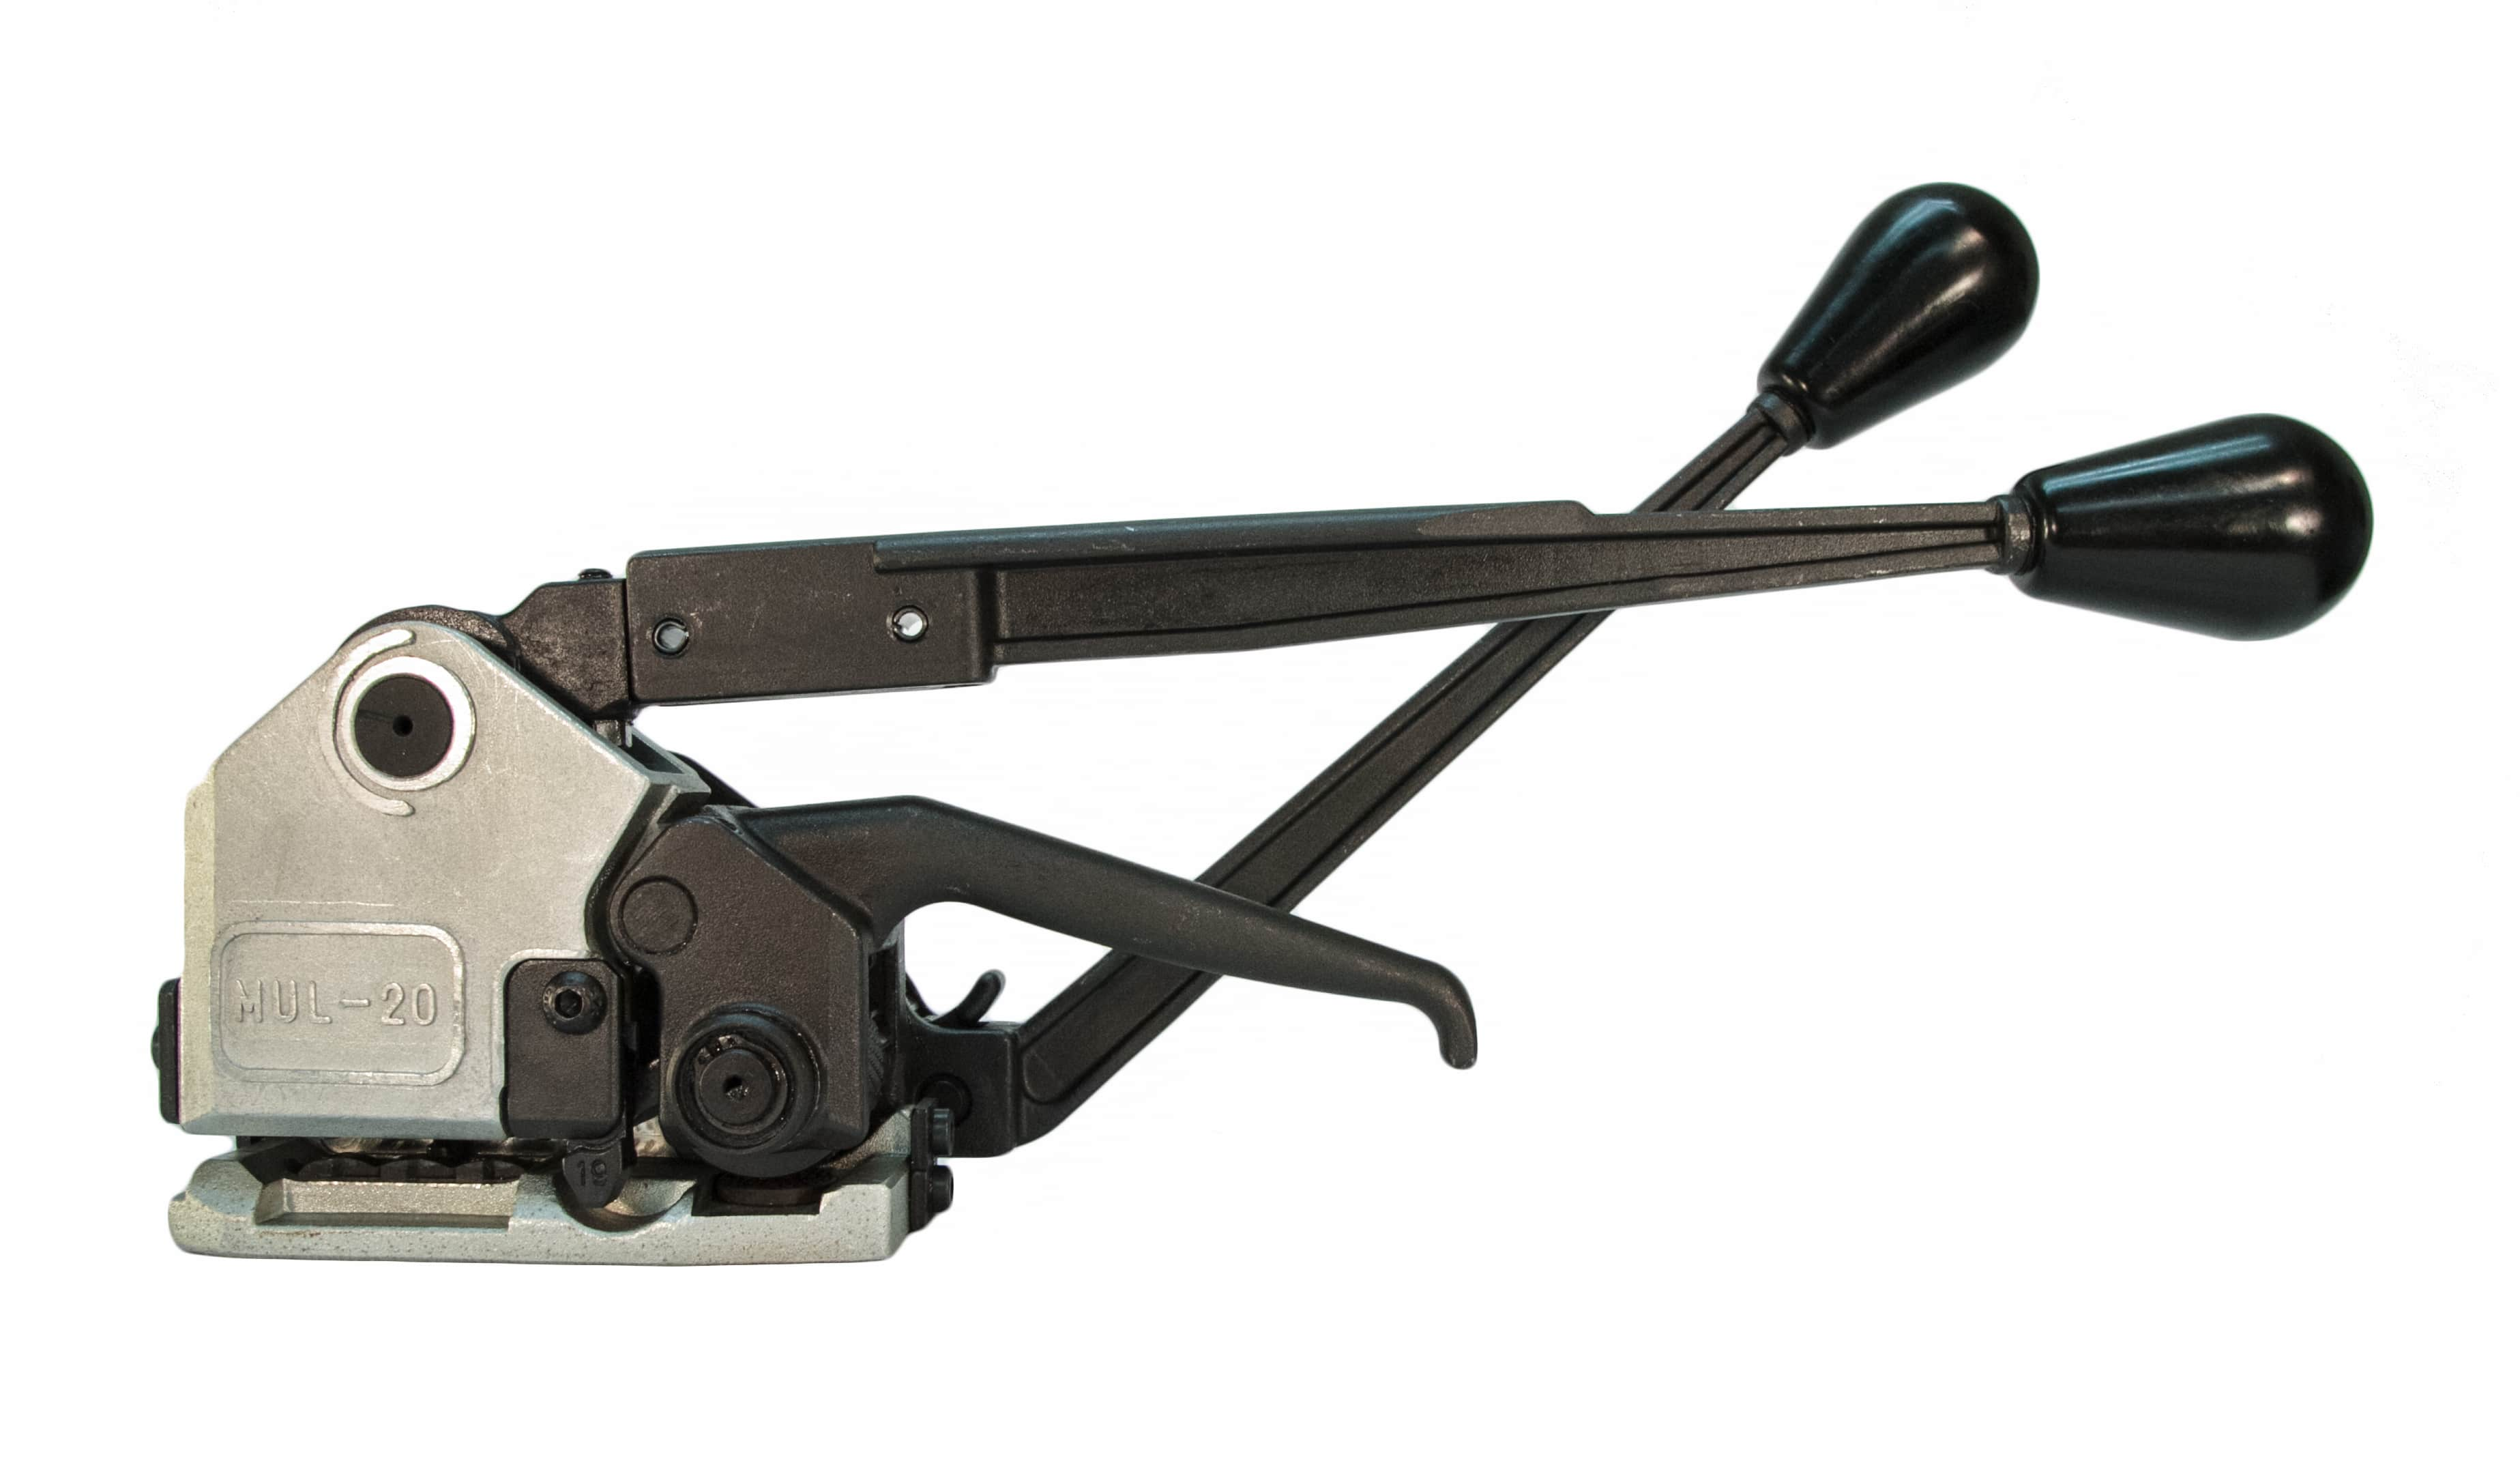 """Sealless Combination Tool for RD to HD Steel Strap - 1/2"""" - 3/4"""" (Flat Packaging)"""